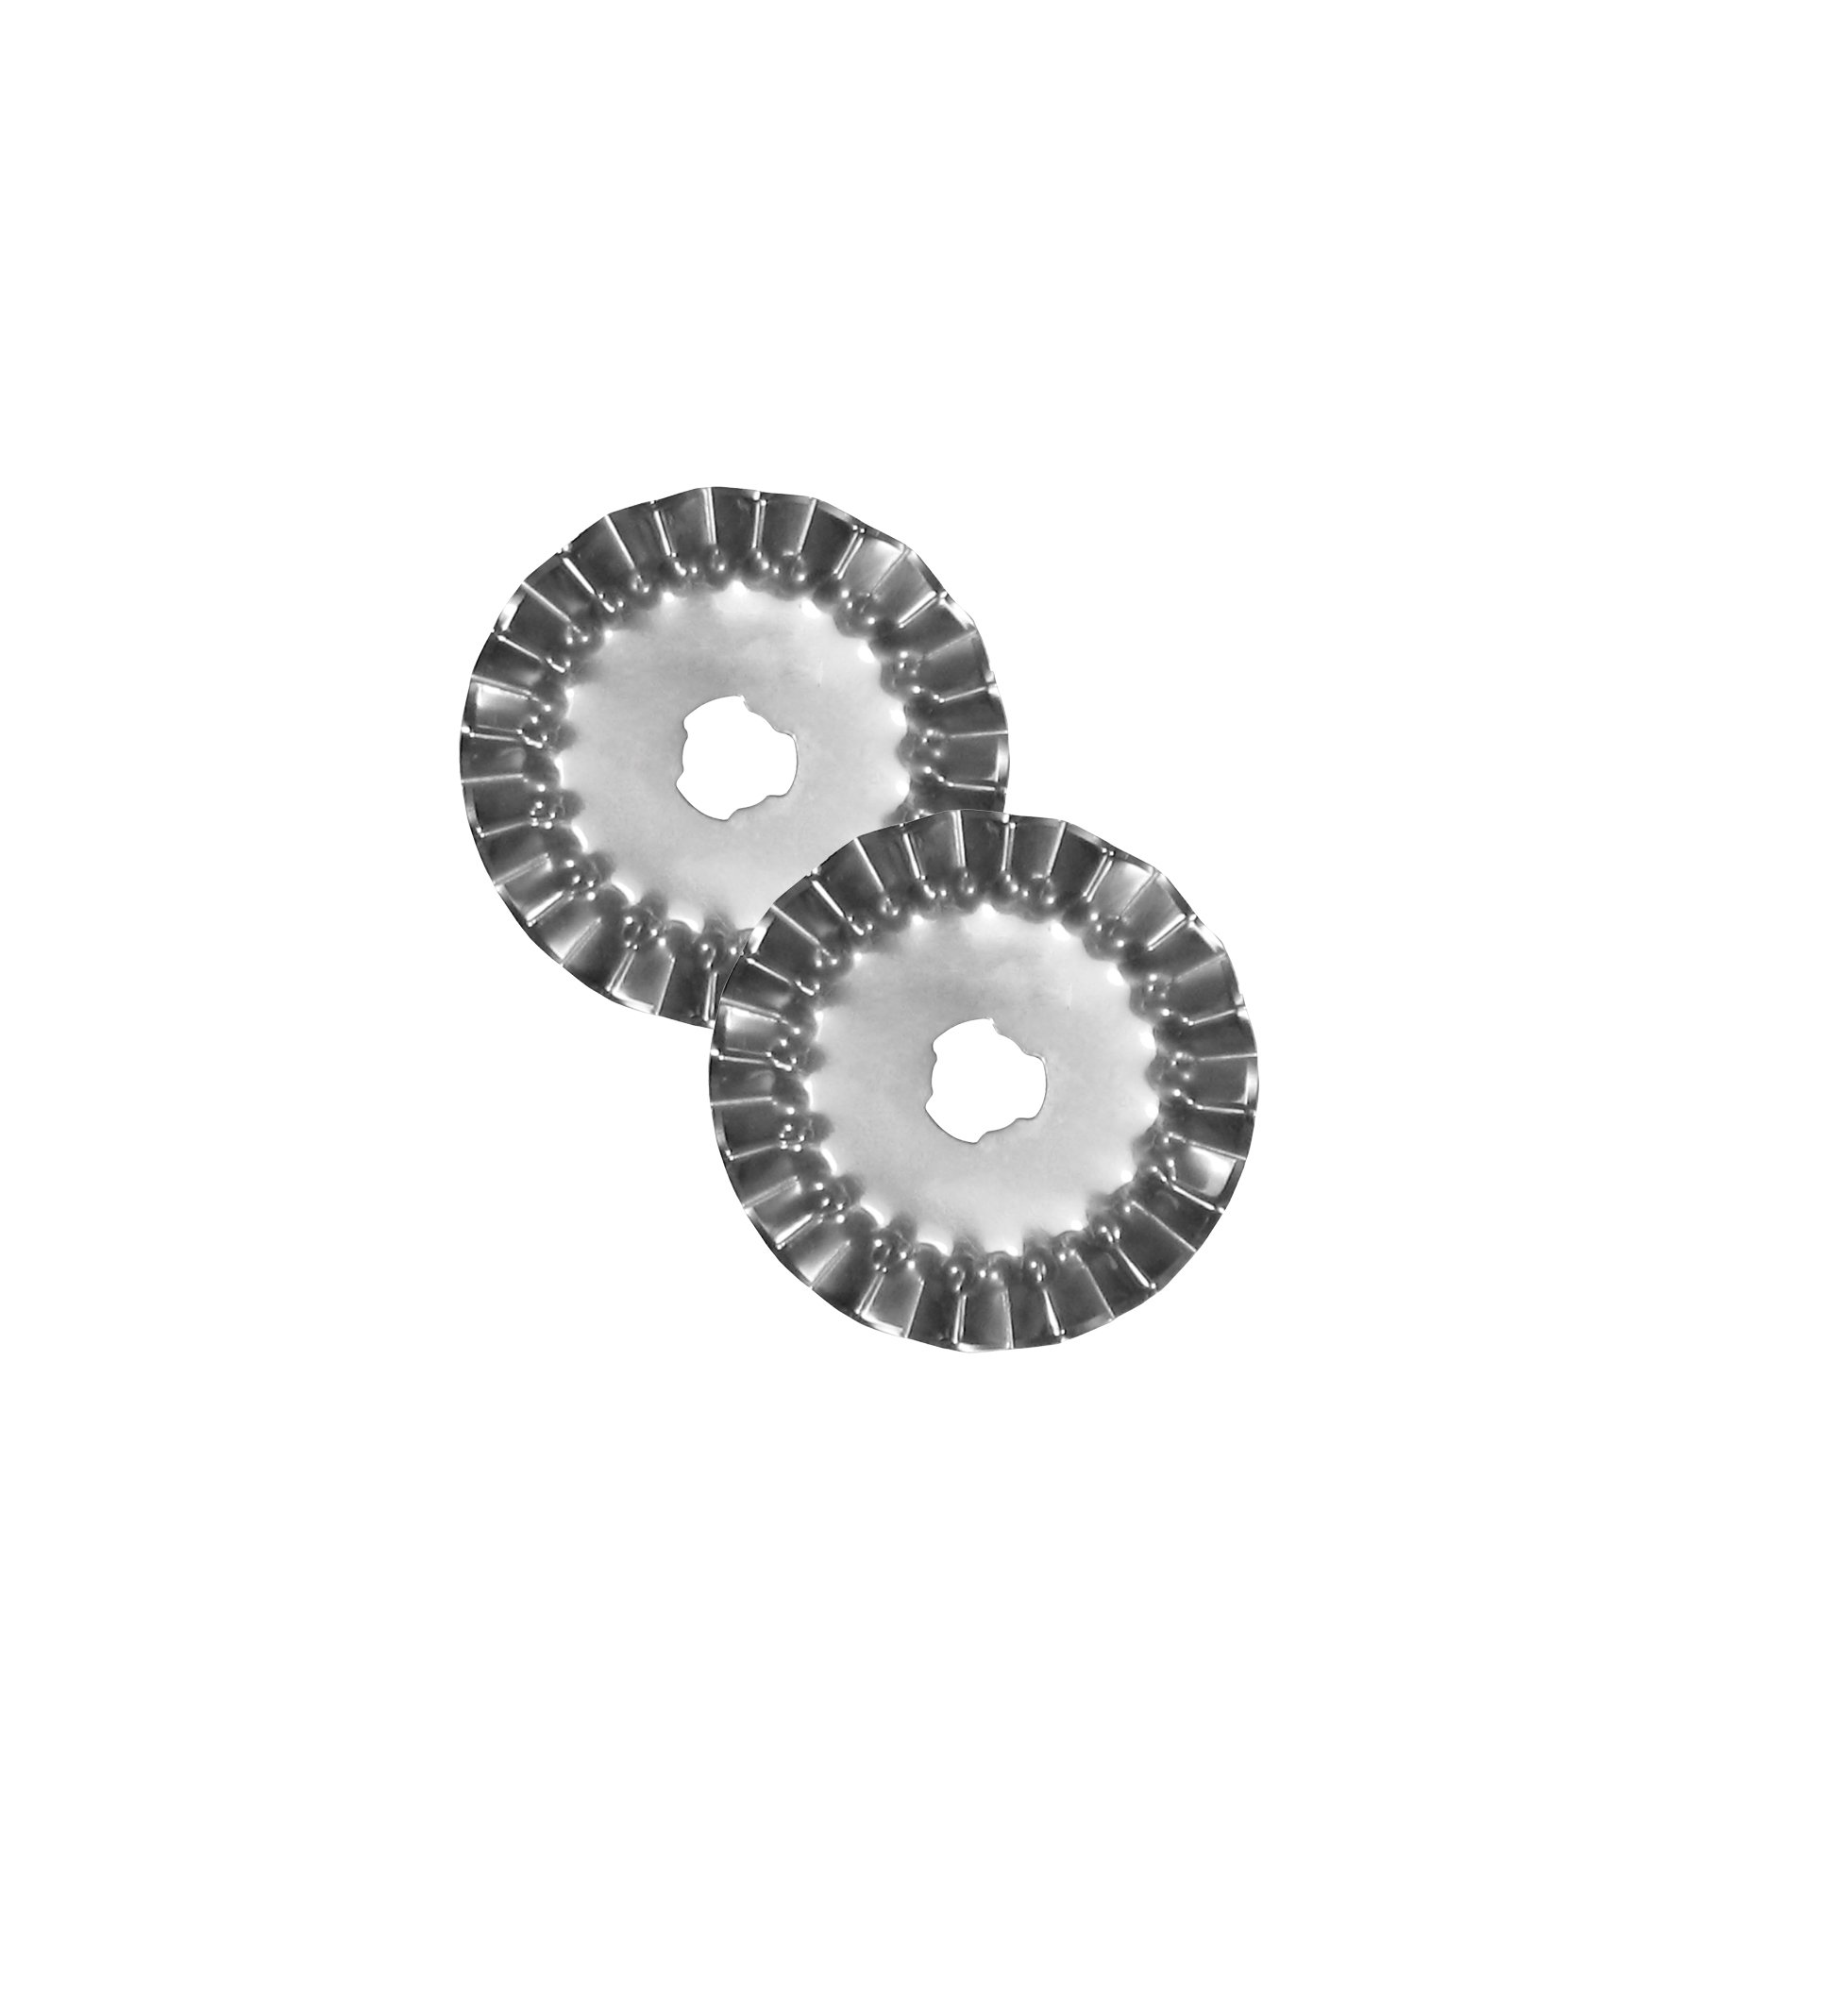 45mm Decorative Rotary Cutter Blades RIGHT HANDED, Pinking (2 Blades), for OLFA, FISKARS, Clover and other Cutters for Quilting, Scrap booking, leather, Vinyl etc from Threadnanny